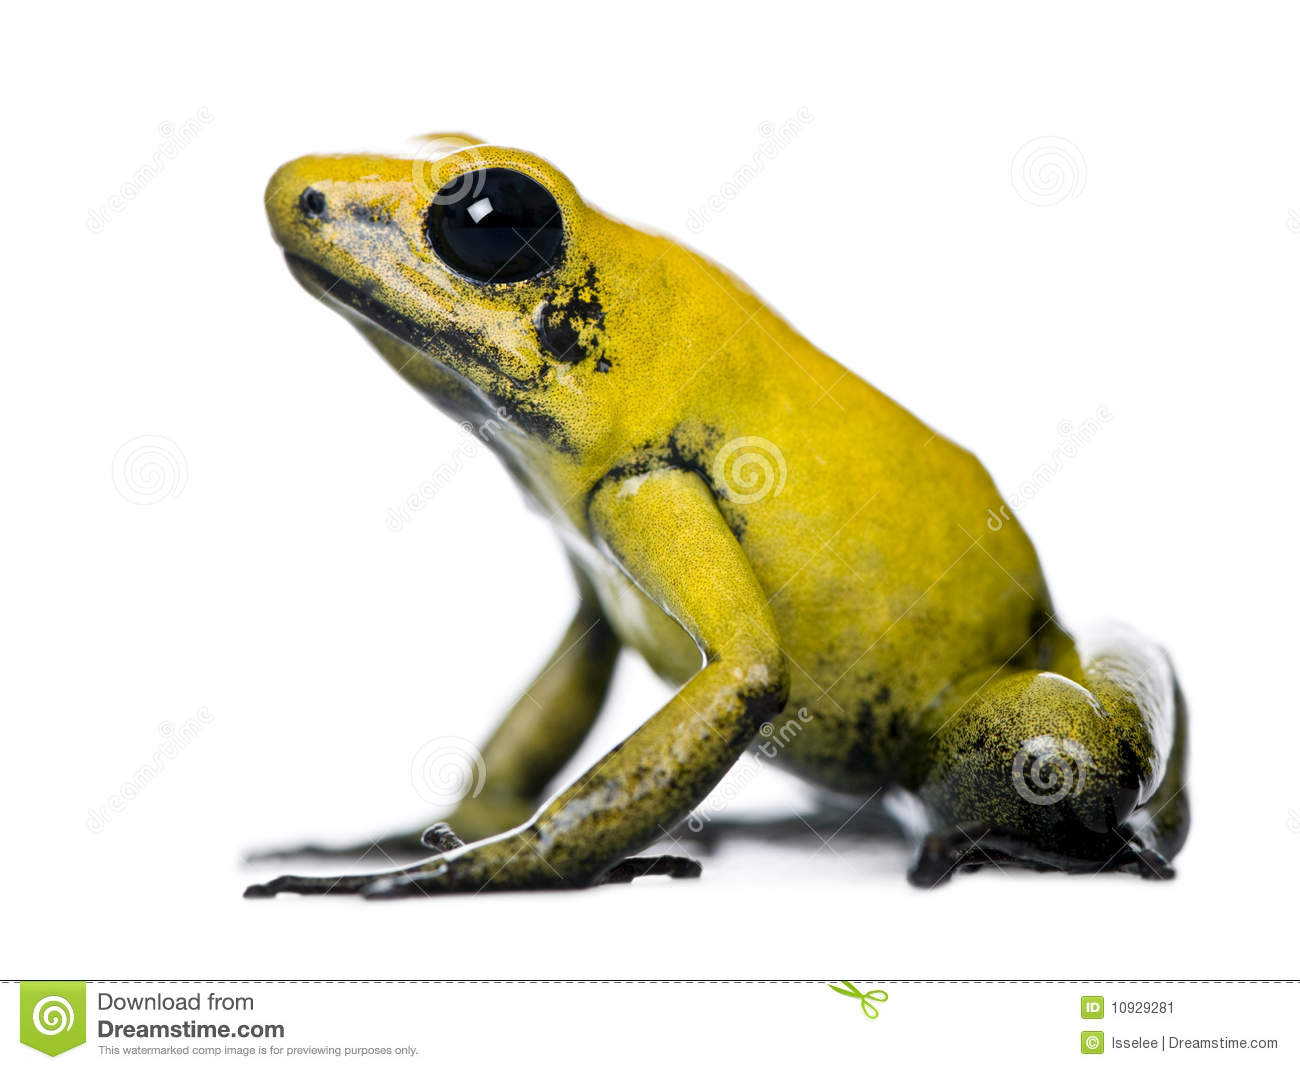 Golden Poison Frog clipart #9, Download drawings